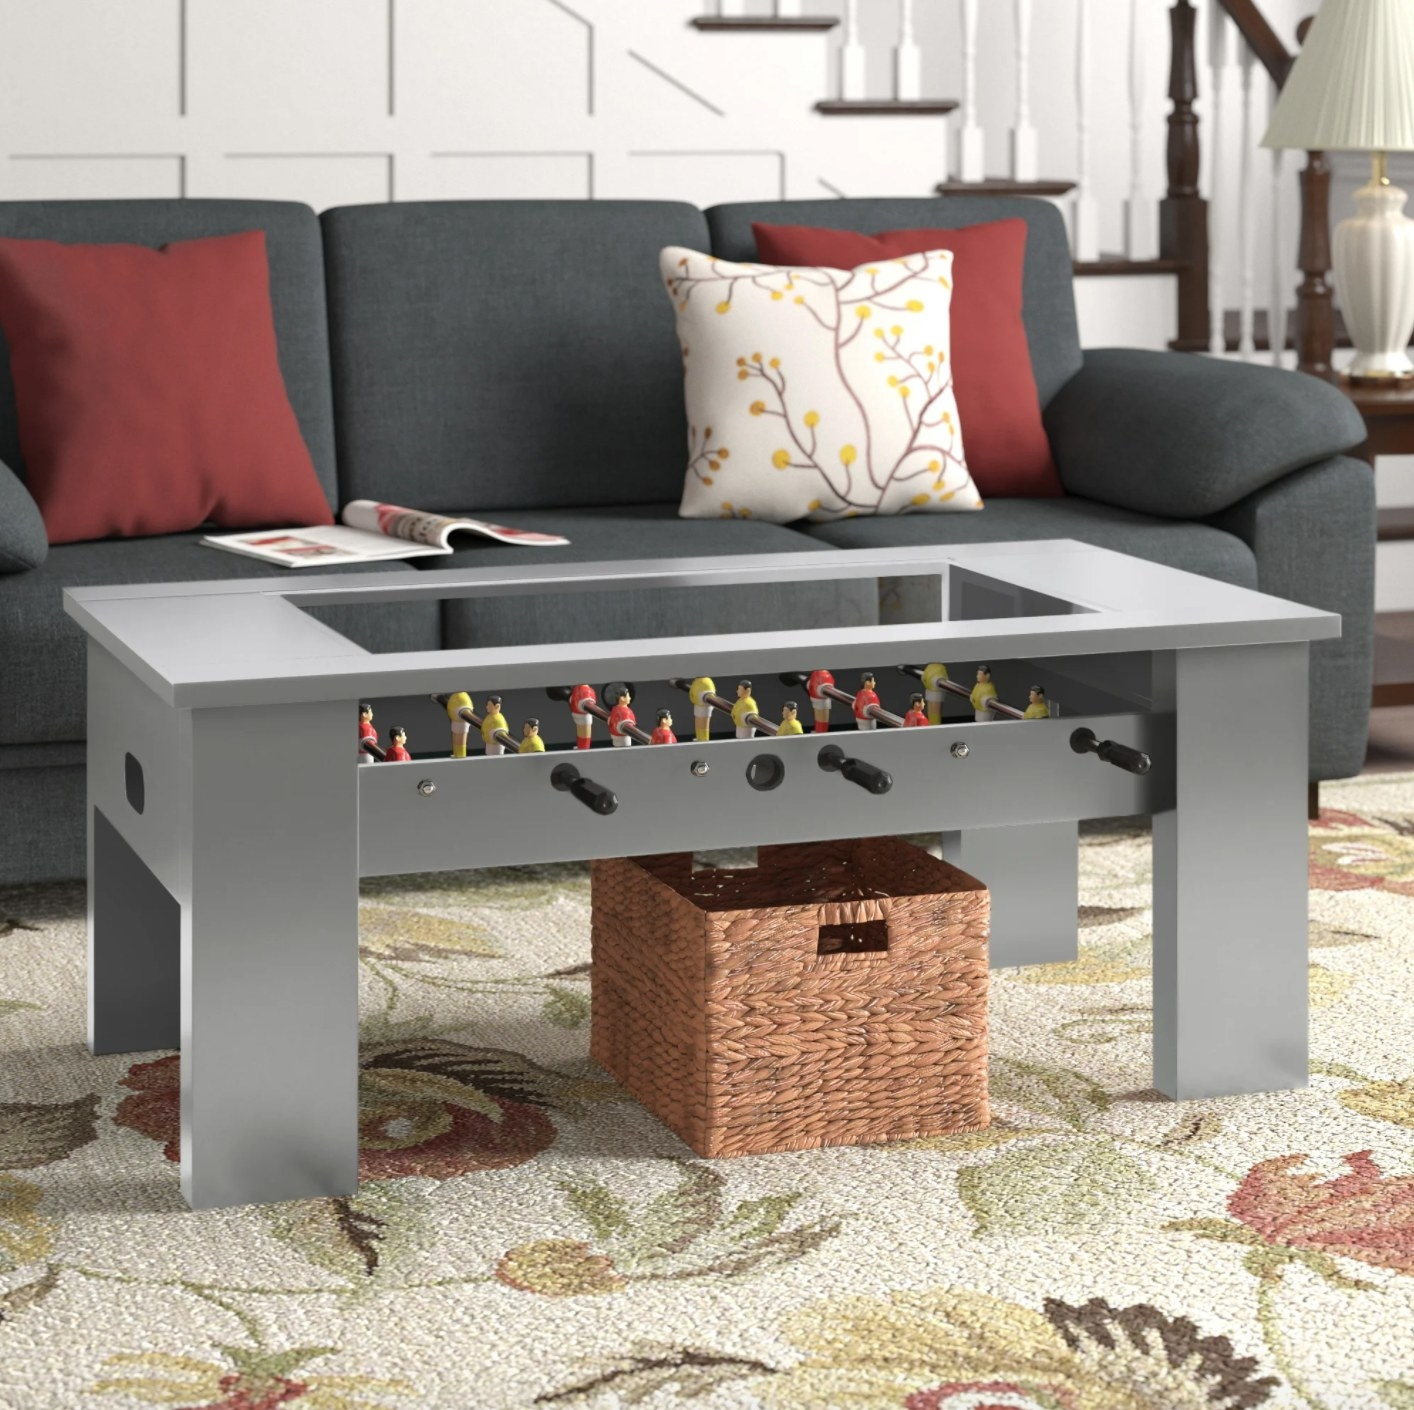 The foosball table in gray